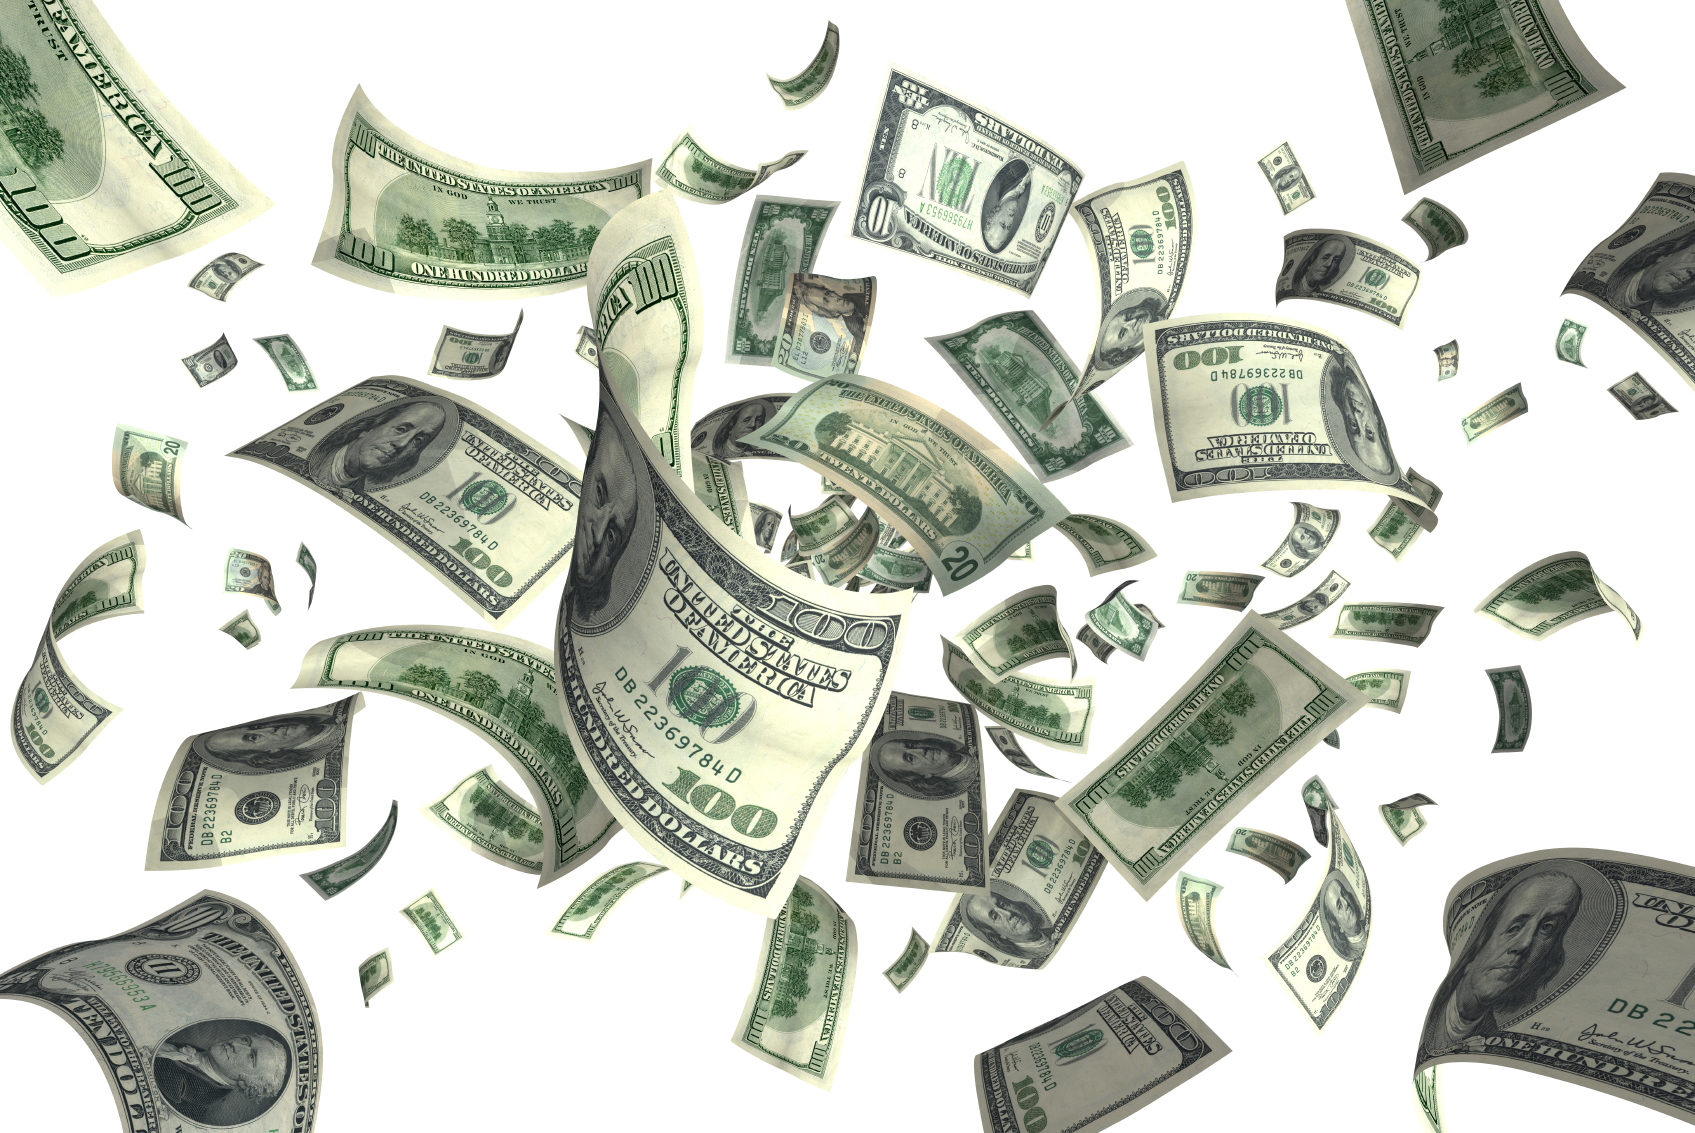 Money Png image #22629 - Money PNG - Raining Money PNG HD